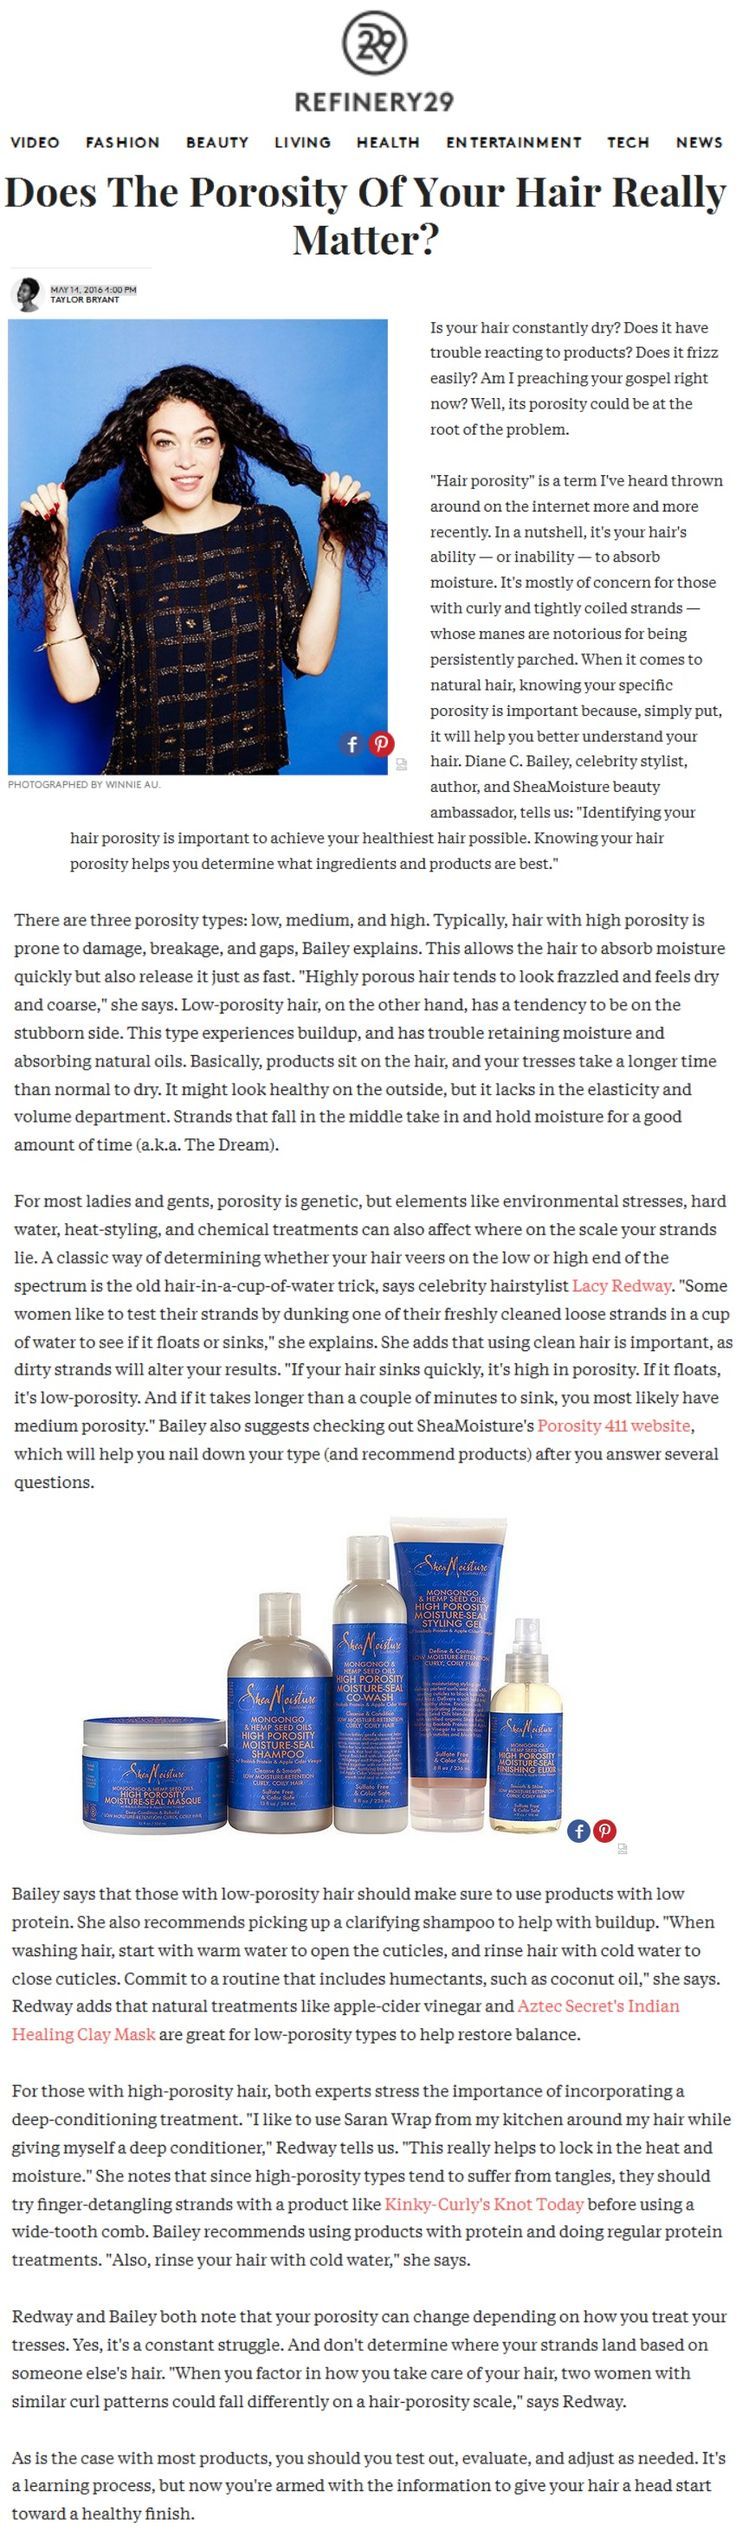 """Refinery29.com features porosity tips from Diane Bailey, Porosity411.com and High Porosity Mongongo & Hemp Seed Oils collection in an editorial titled, """"Does The Porosity Of Your Hair Really Matter?"""""""